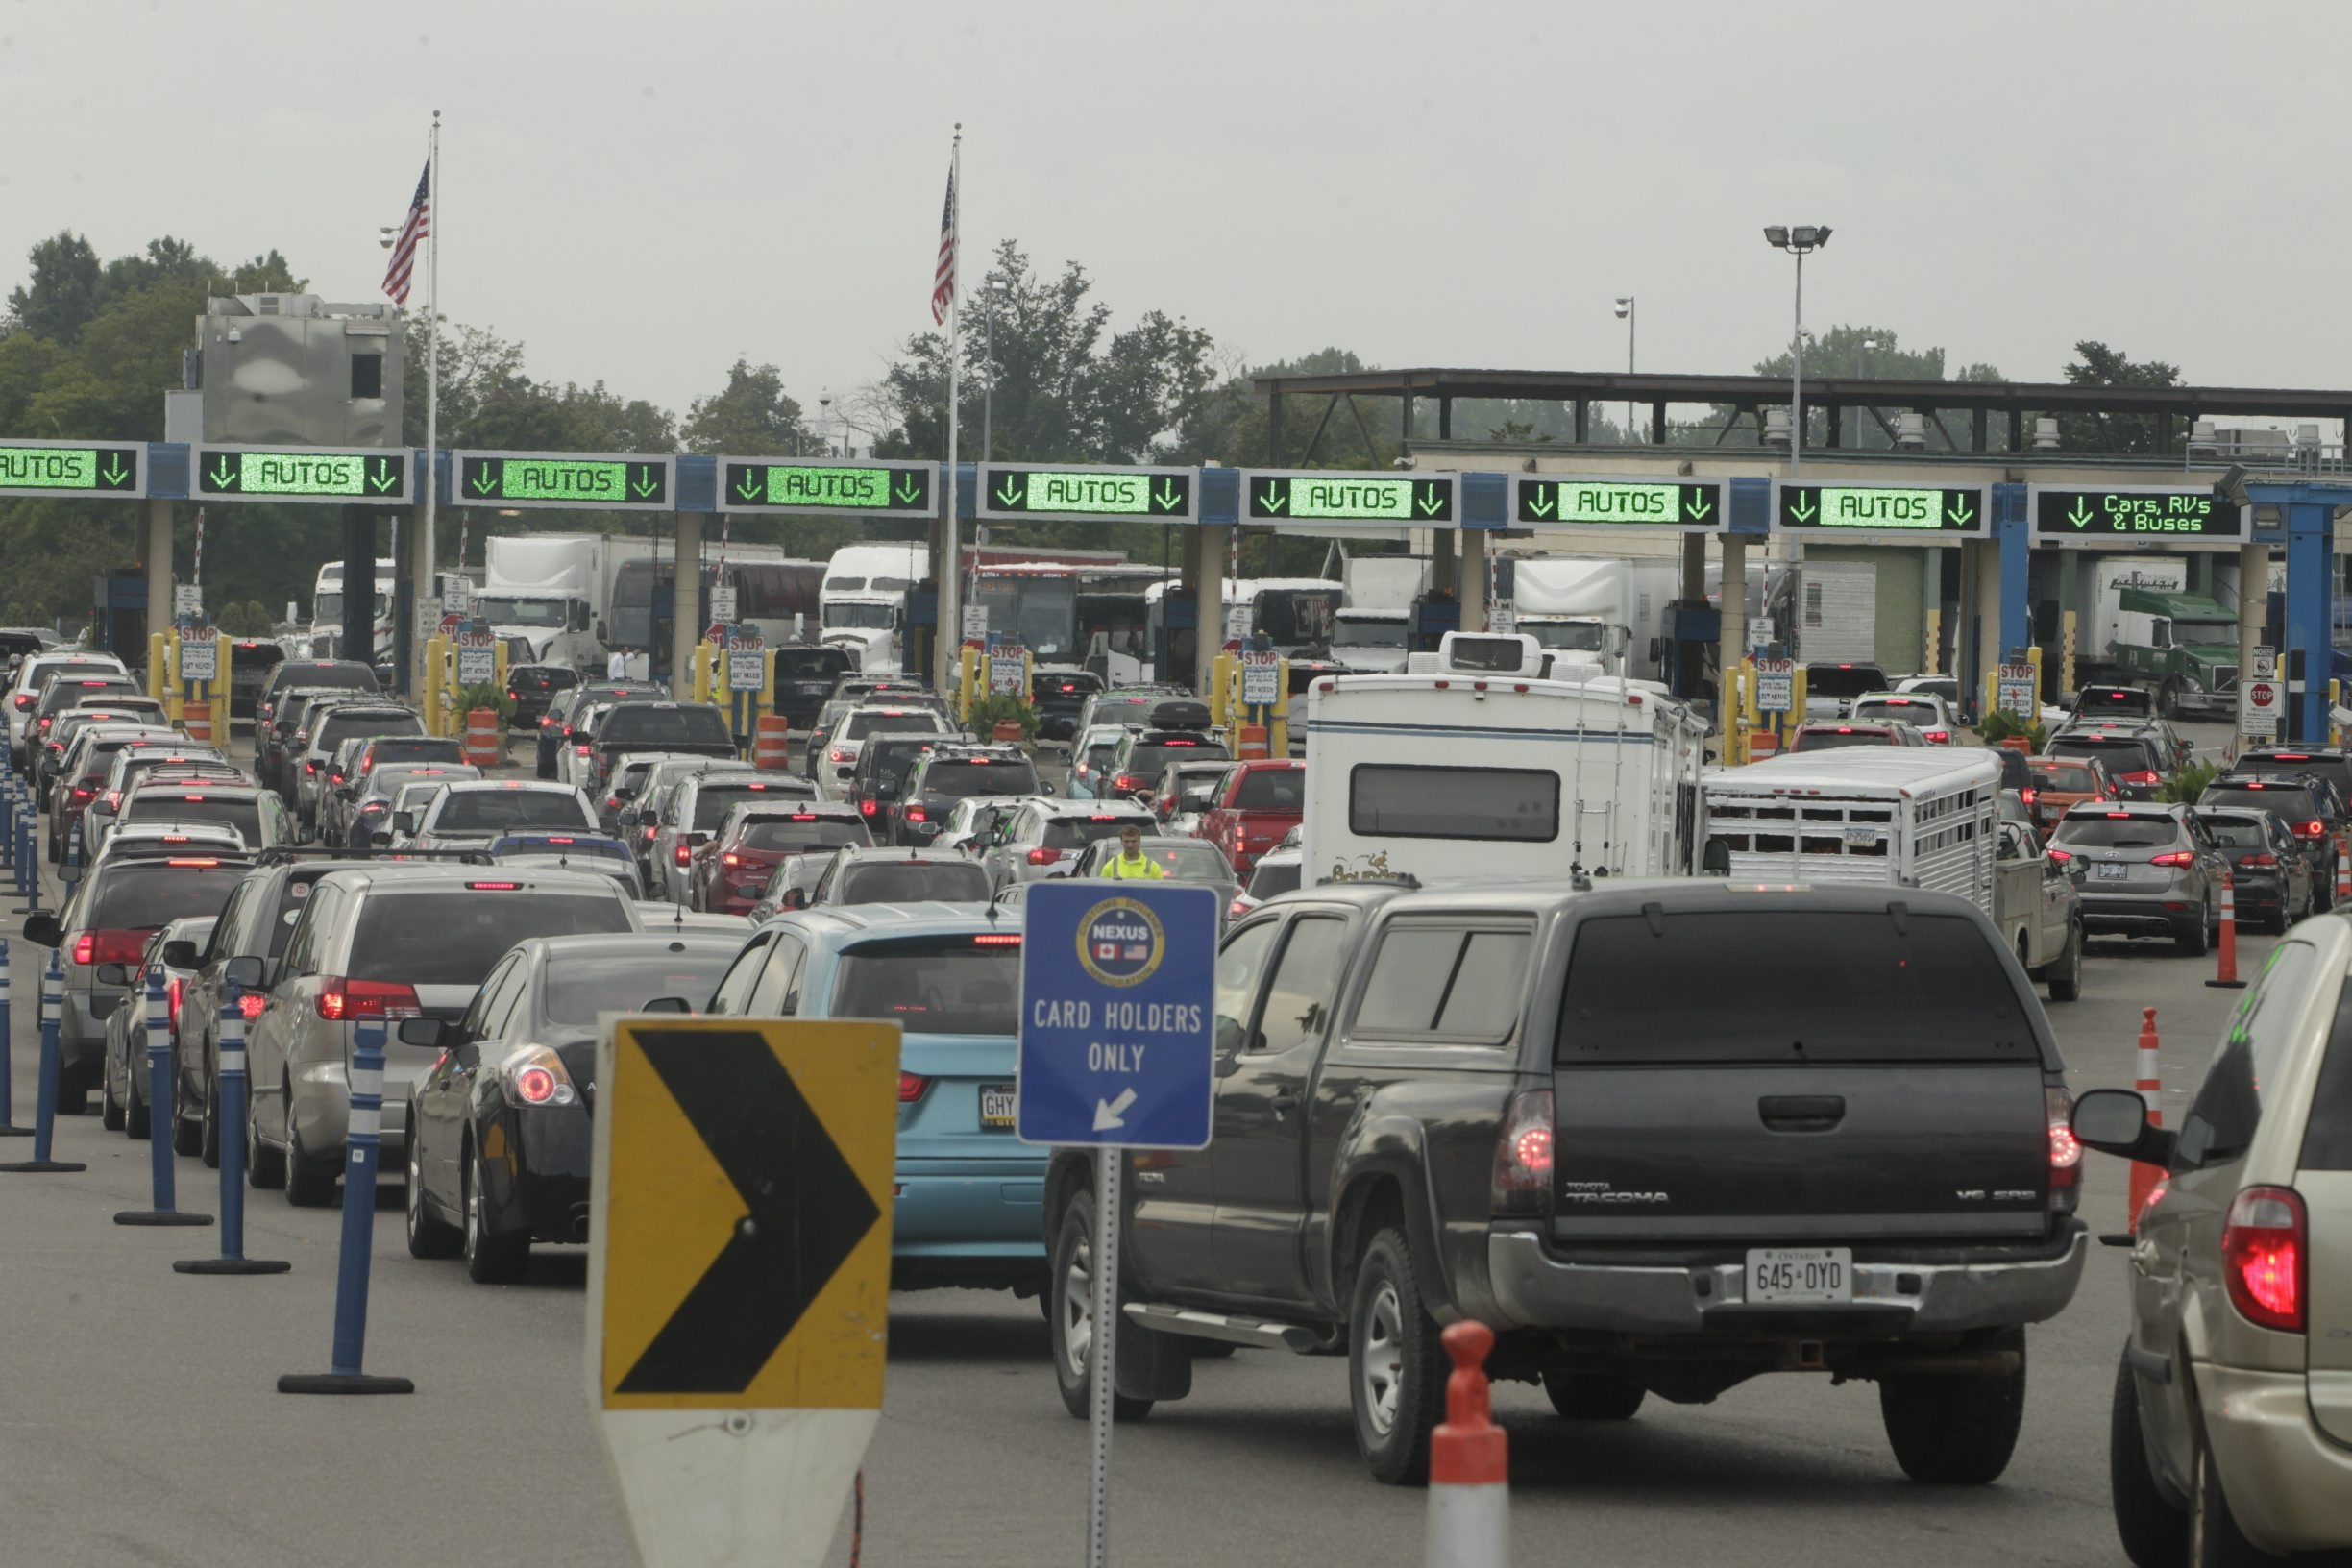 Vehicles idle while waiting to enter the United States from Canada via the Peace Bridge on Friday. Inadequate staffing at inspection booths or longer processing times are causing most of the recent traffic at area crossings, officials on both sides of the border say.